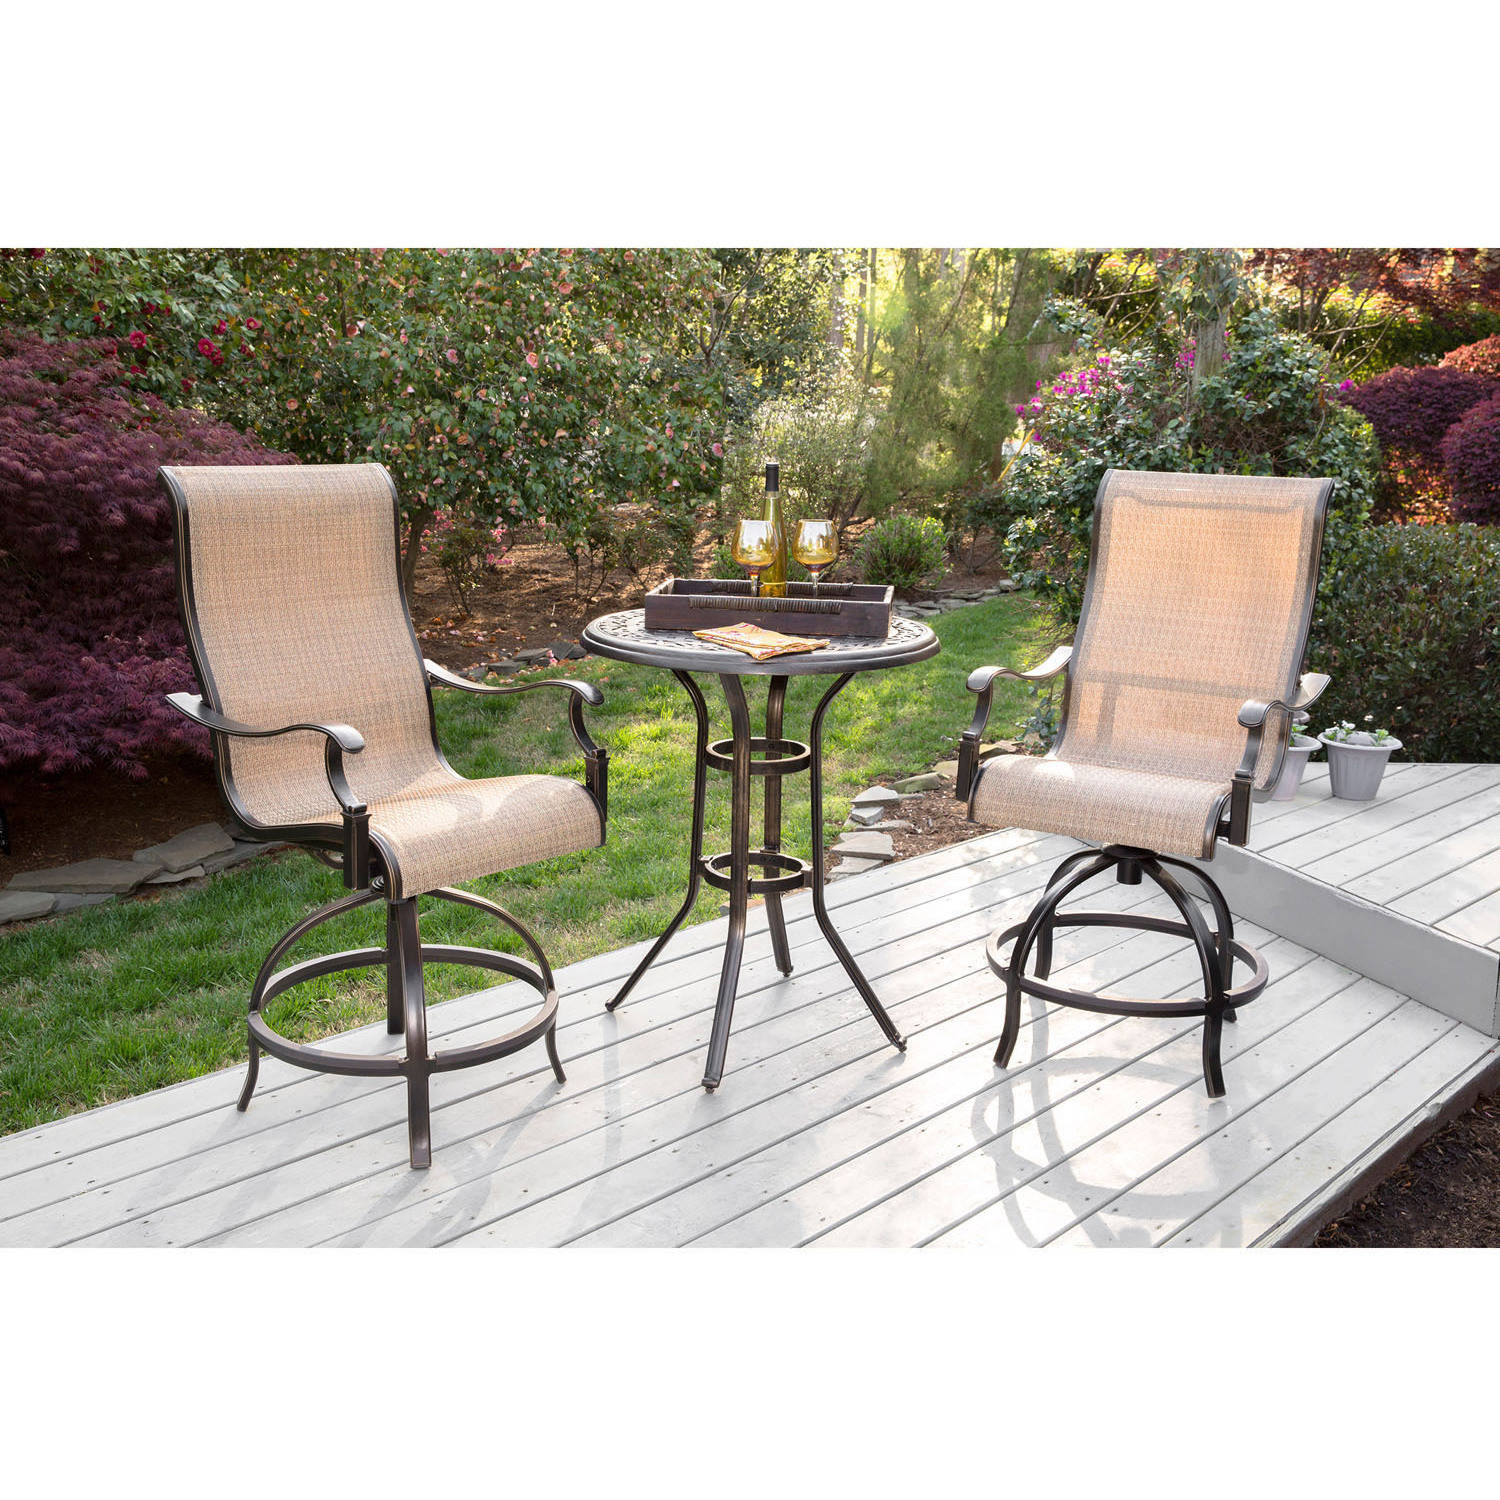 3 piece patio set hanover manor 3 outdoor high dining bar set 10318